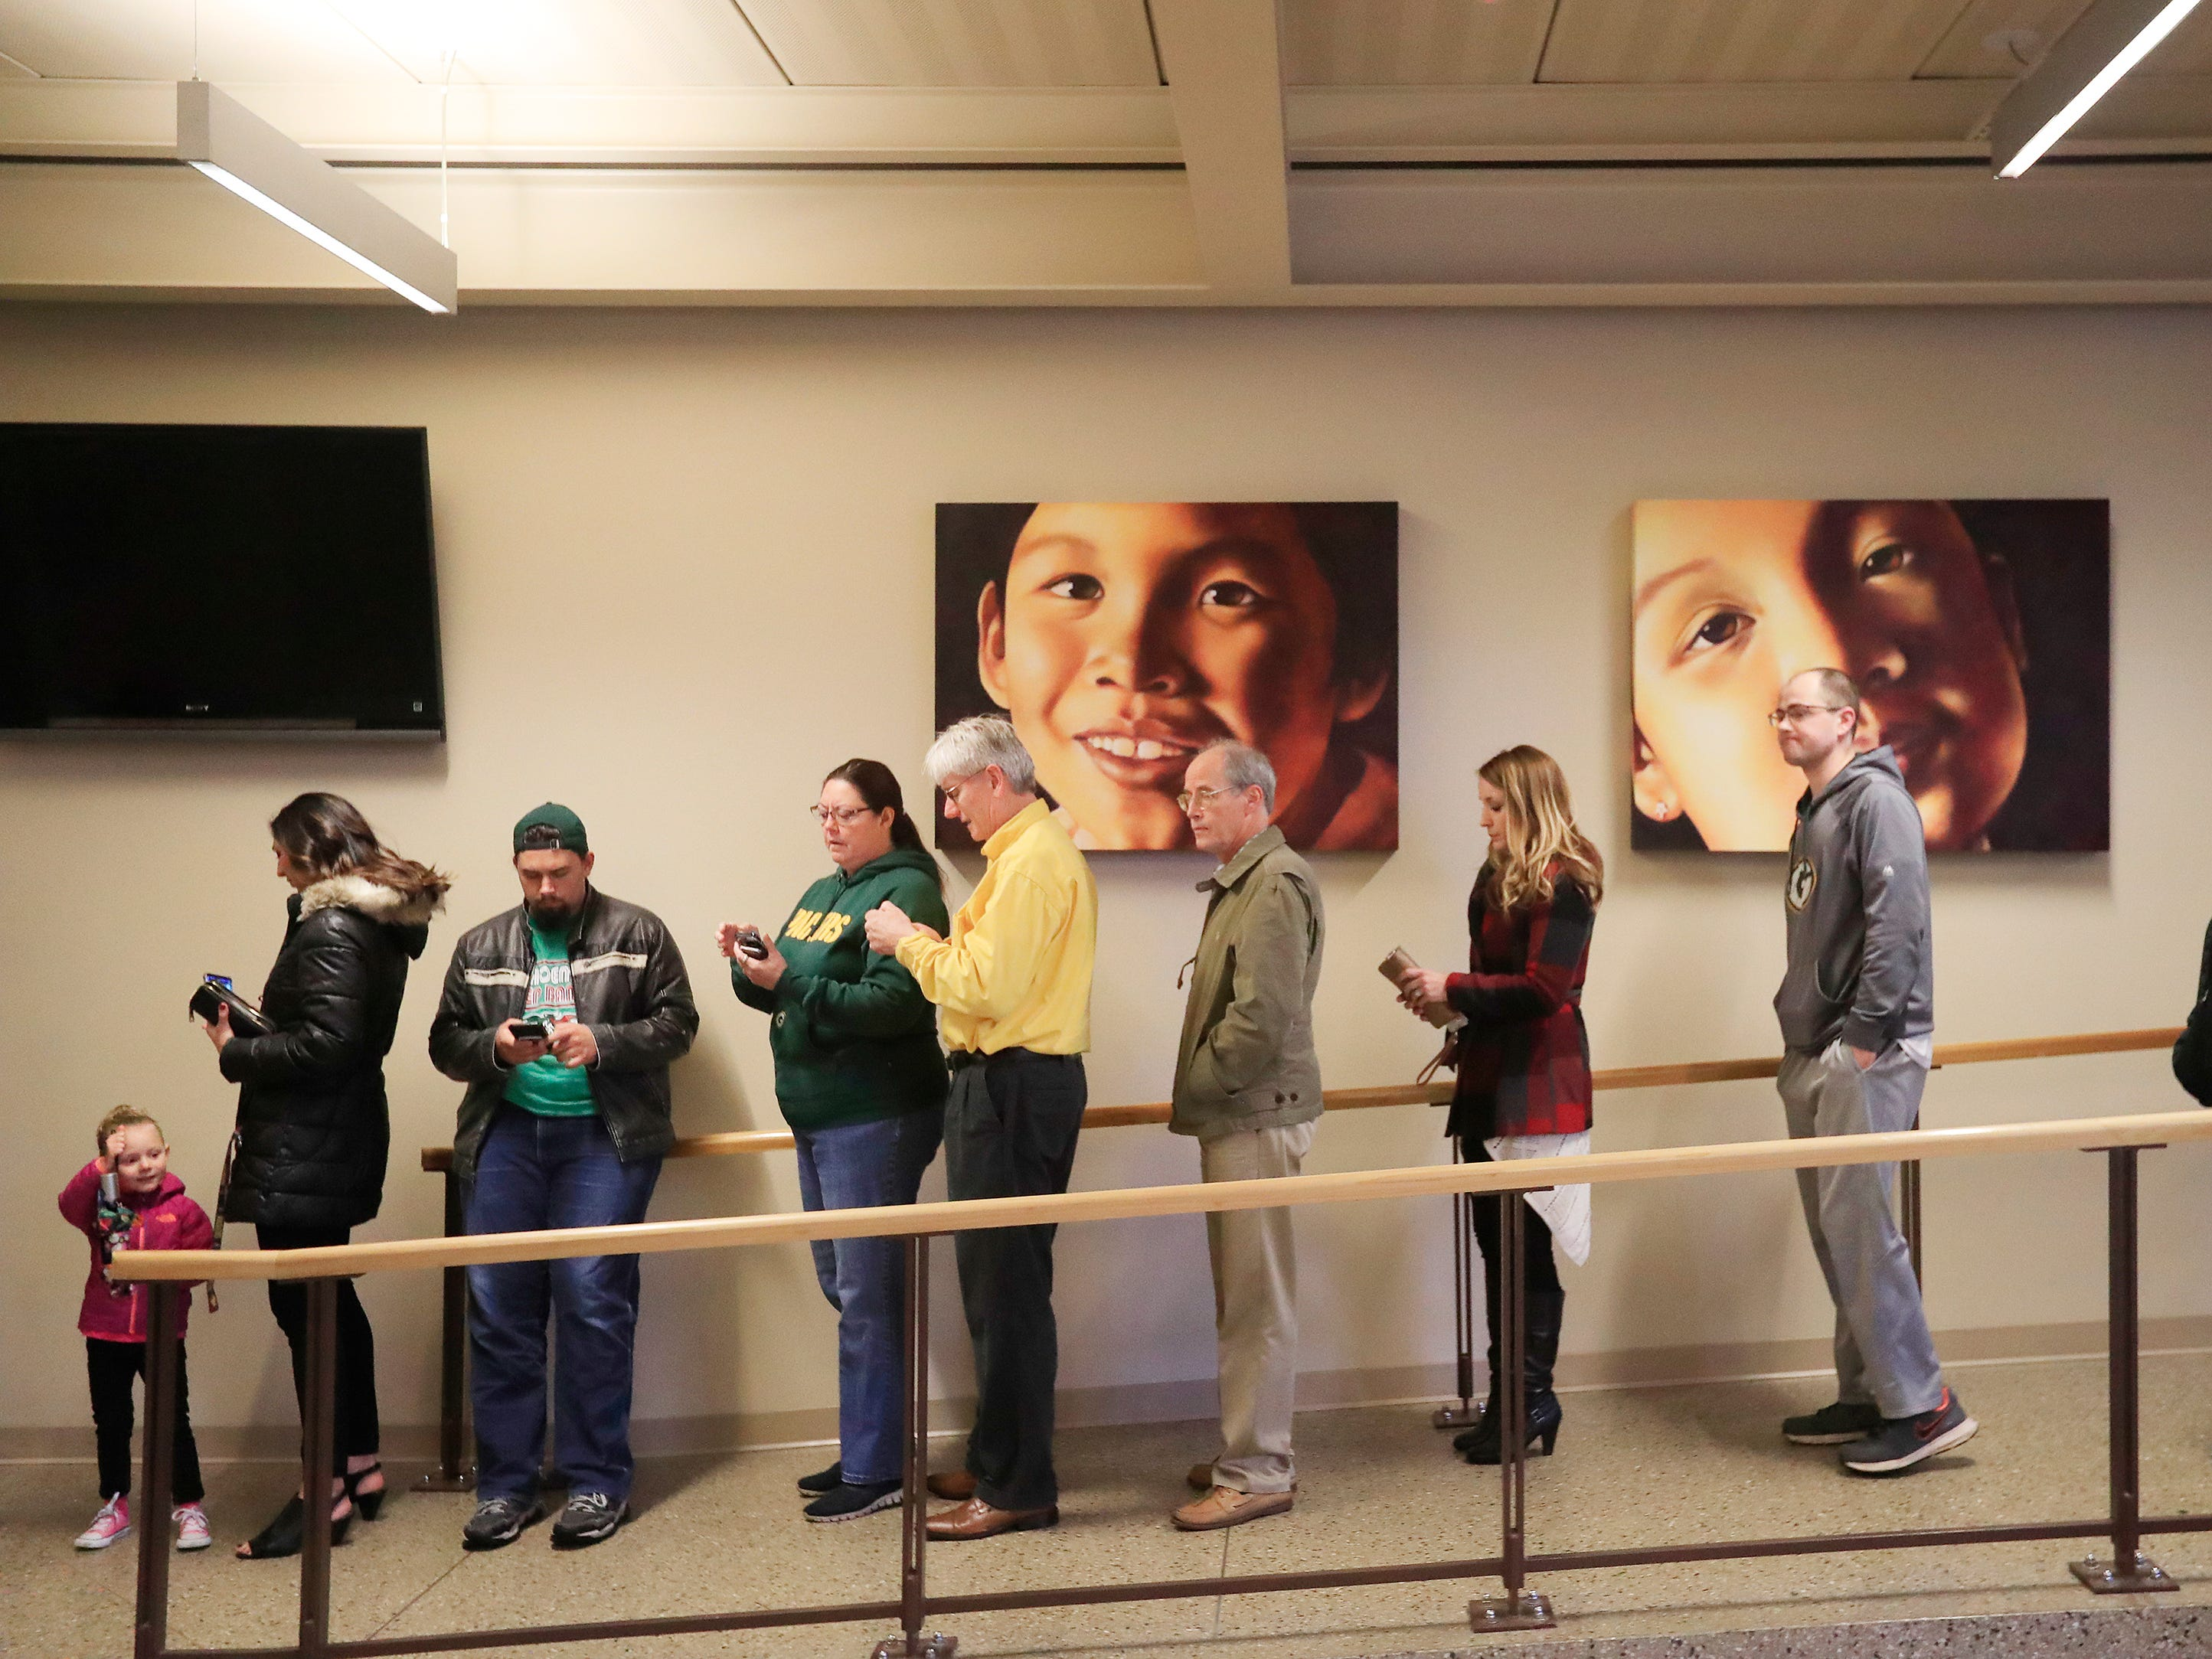 Voters line up to cast their ballots at the UW-Green Bay campus on Tuesday, November 6, 2018, in Green Bay, Wis.